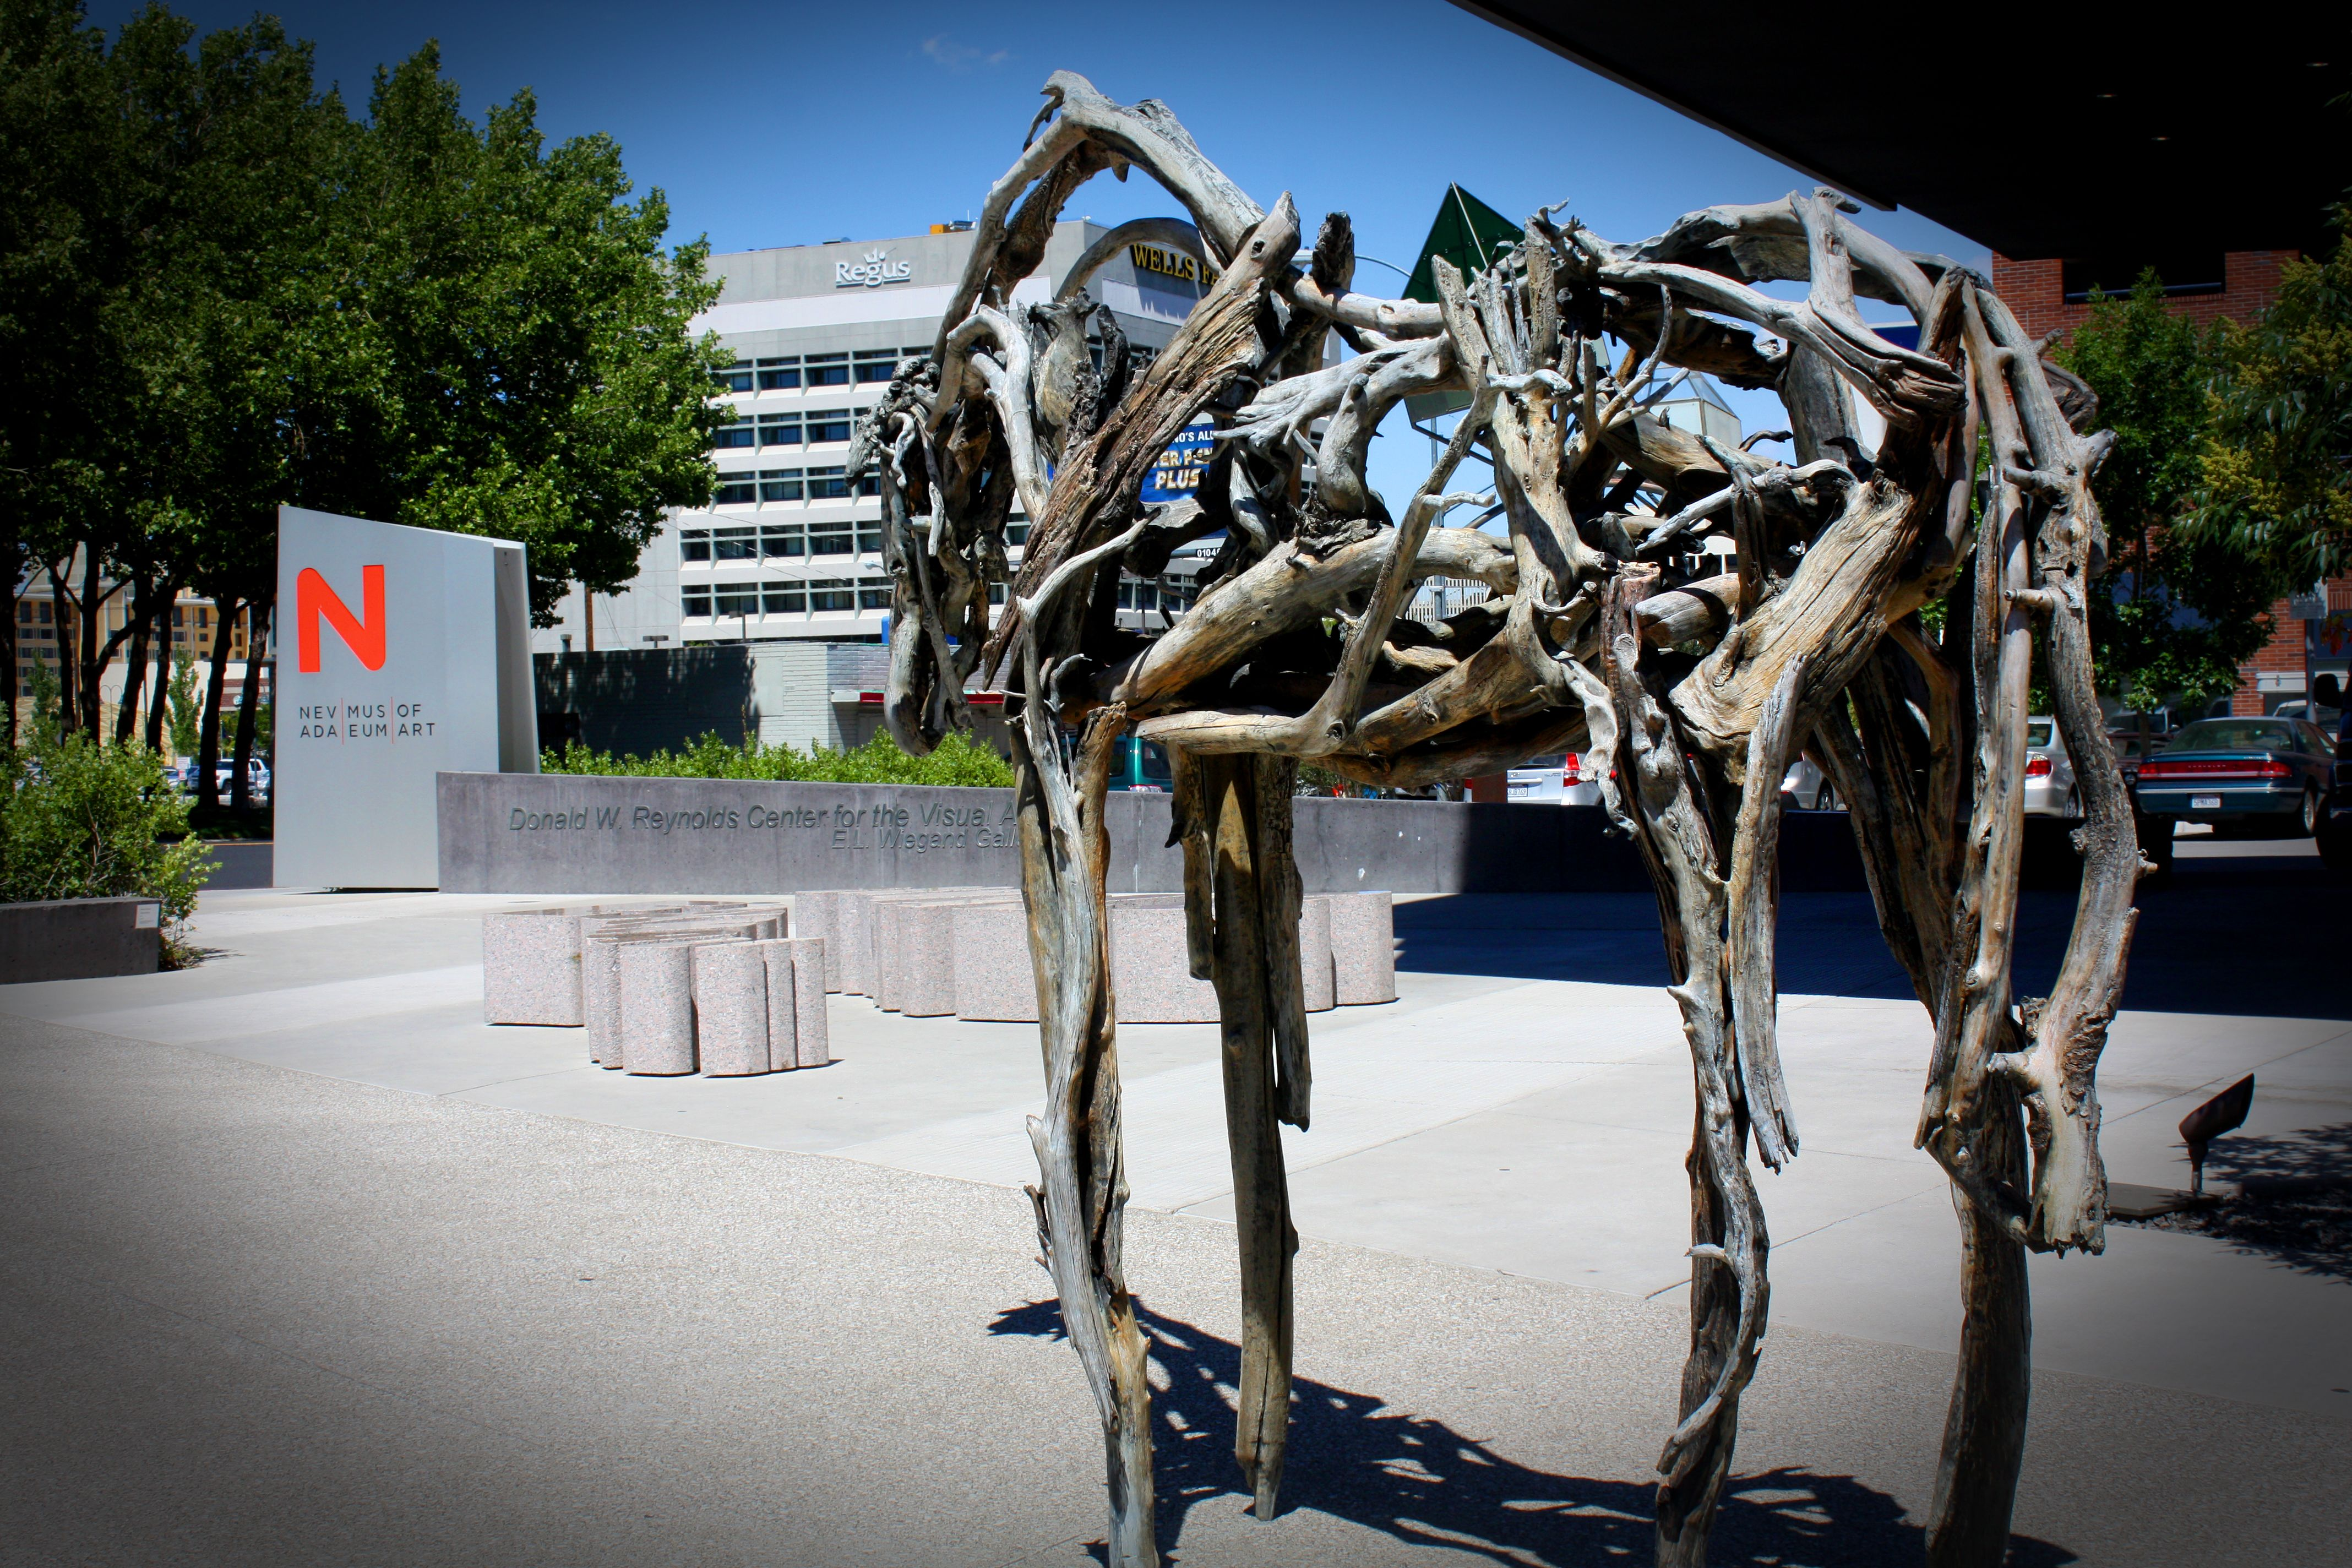 Horse Sculpture Made Of Wood Branches Nevada Museum Of Art Reno Nv Photo Taken By Natalie Lumbo Horse Sculpture Culture Art Art Museum